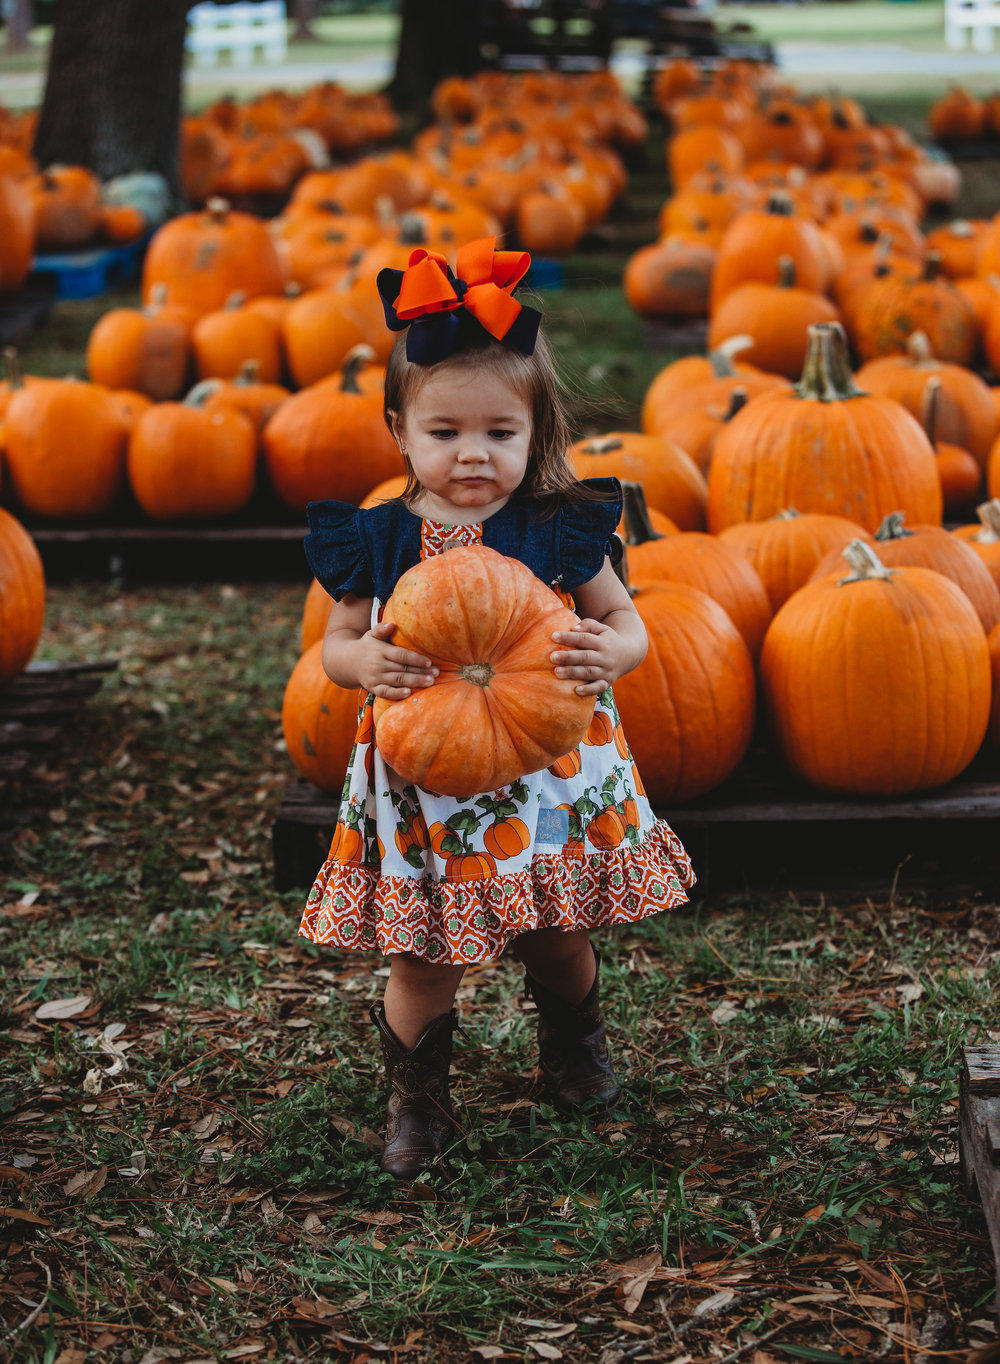 She definitely surprised me with the huge pumpkins she was choosing for such a tiny tot herself!!!